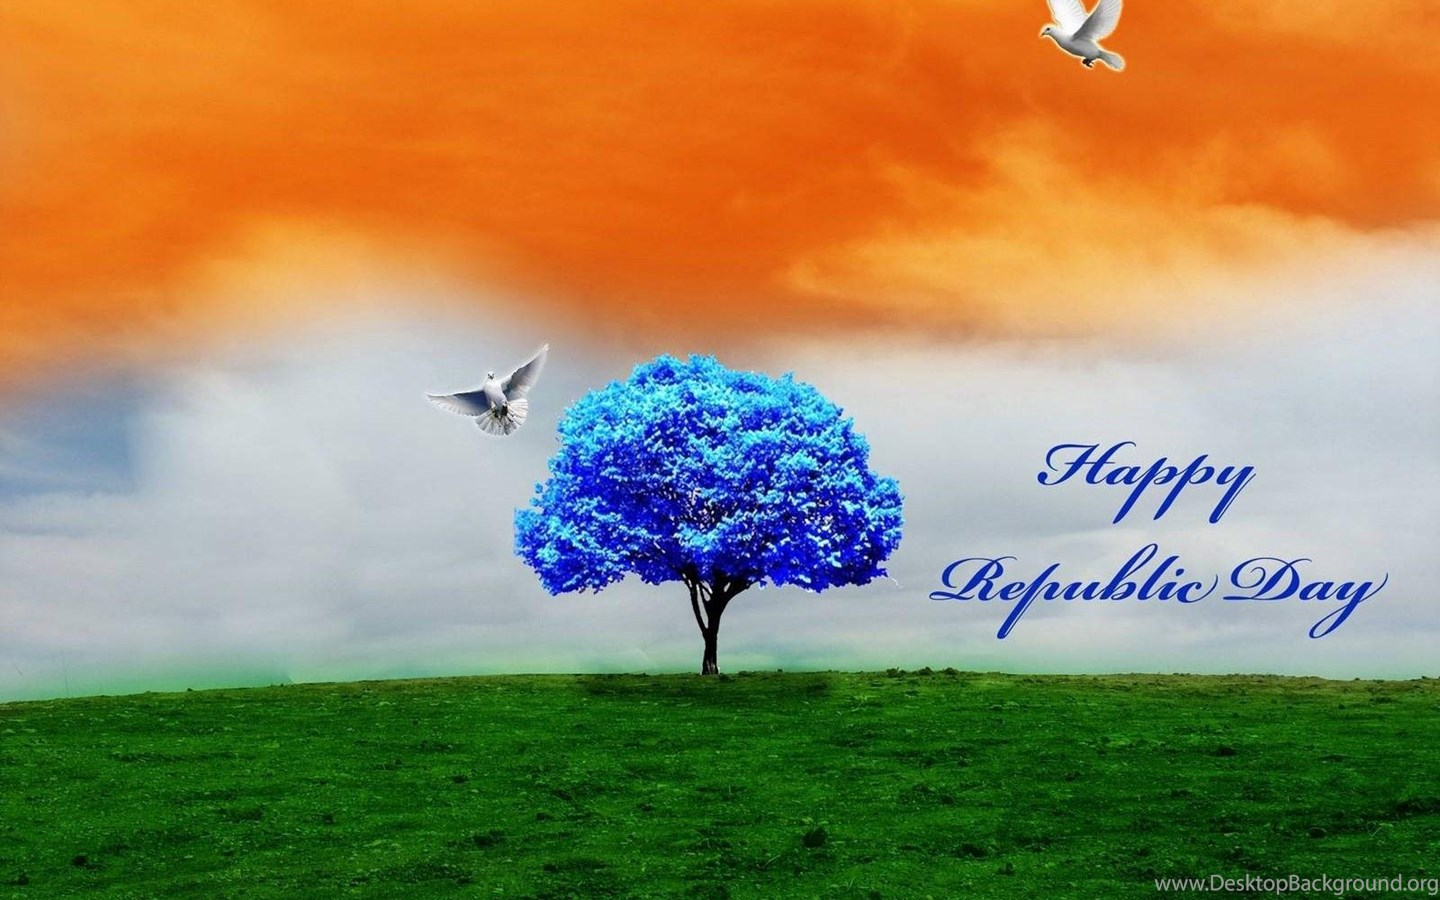 Republic Day Indian Flag Images, Pictures, Wallpapers For